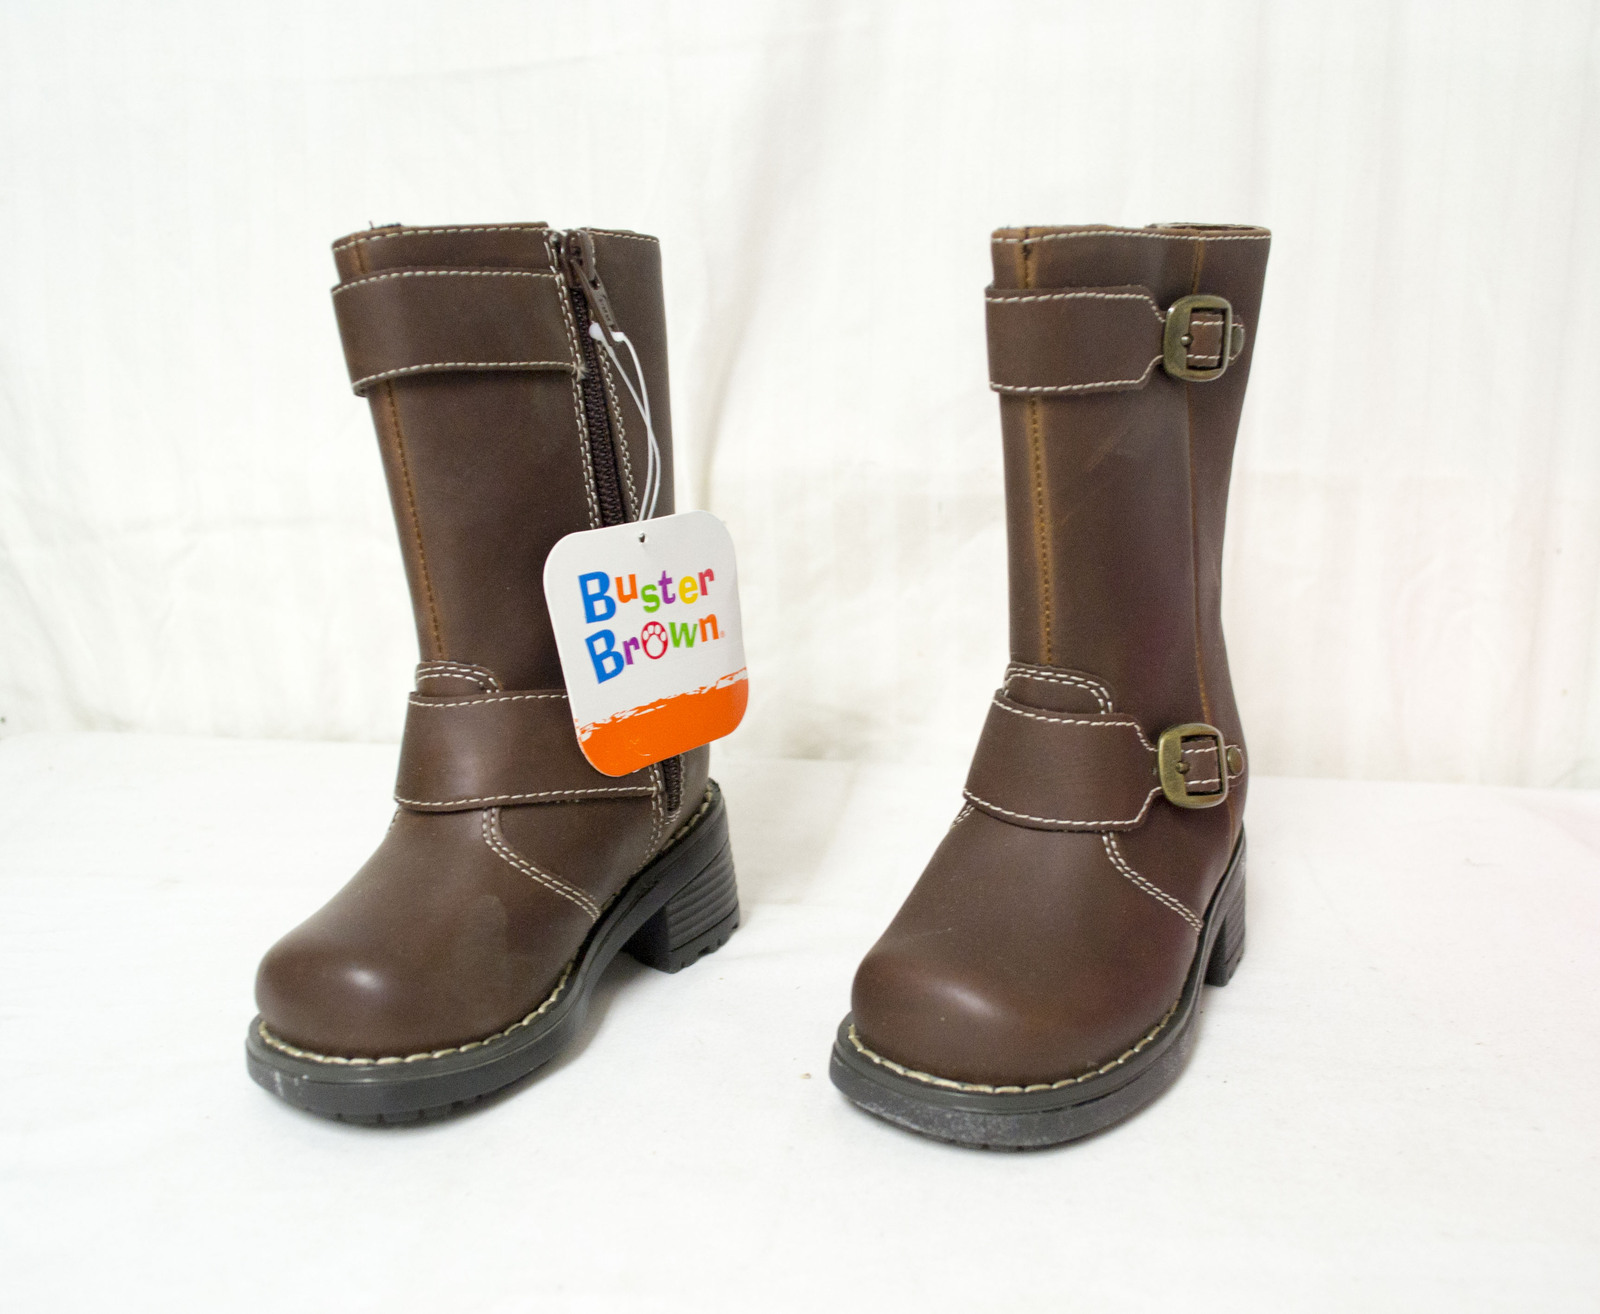 free ship boots buster brown shoes brown boots